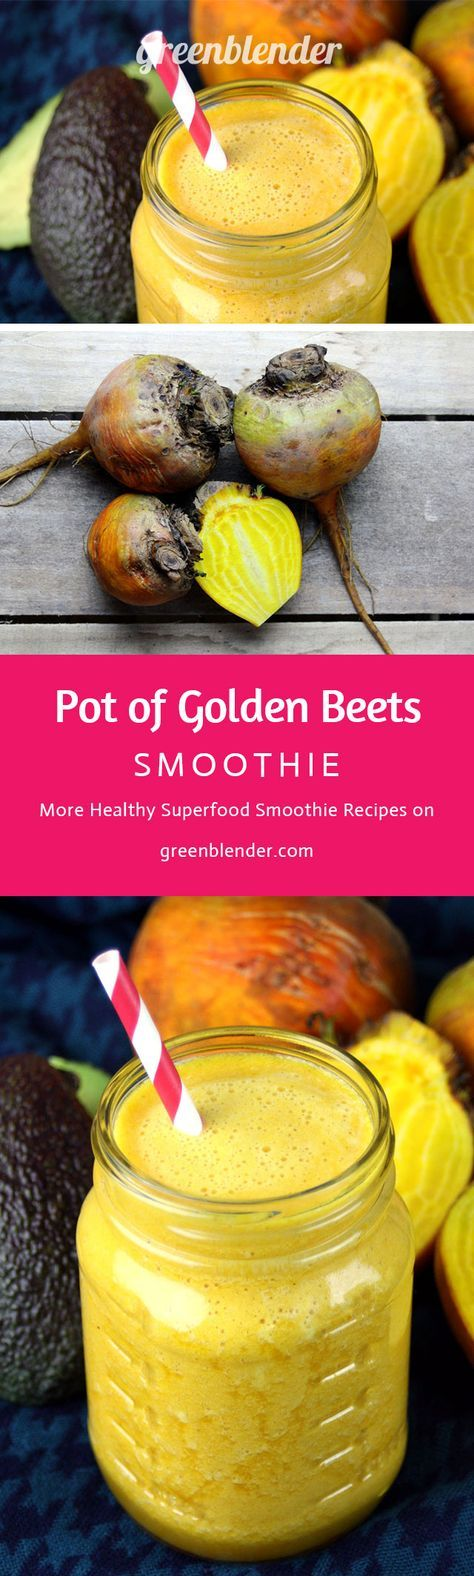 Pot of Golden Beets Smoothie Recipe by Green Blender: This simple smoothie is overflowing with so many health benefits, it just might be better than a pot of gold! Golden beets are very mild and sweet compared to their red counterpart. Cara cara oranges are sweet and tangy, providing the perfect contrast to the earthy taste of beets. These oranges also load this smoothie with vitamin C and folic acid, keeping your immunity strong and heart protected. Cara cara oranges are a cross between the…